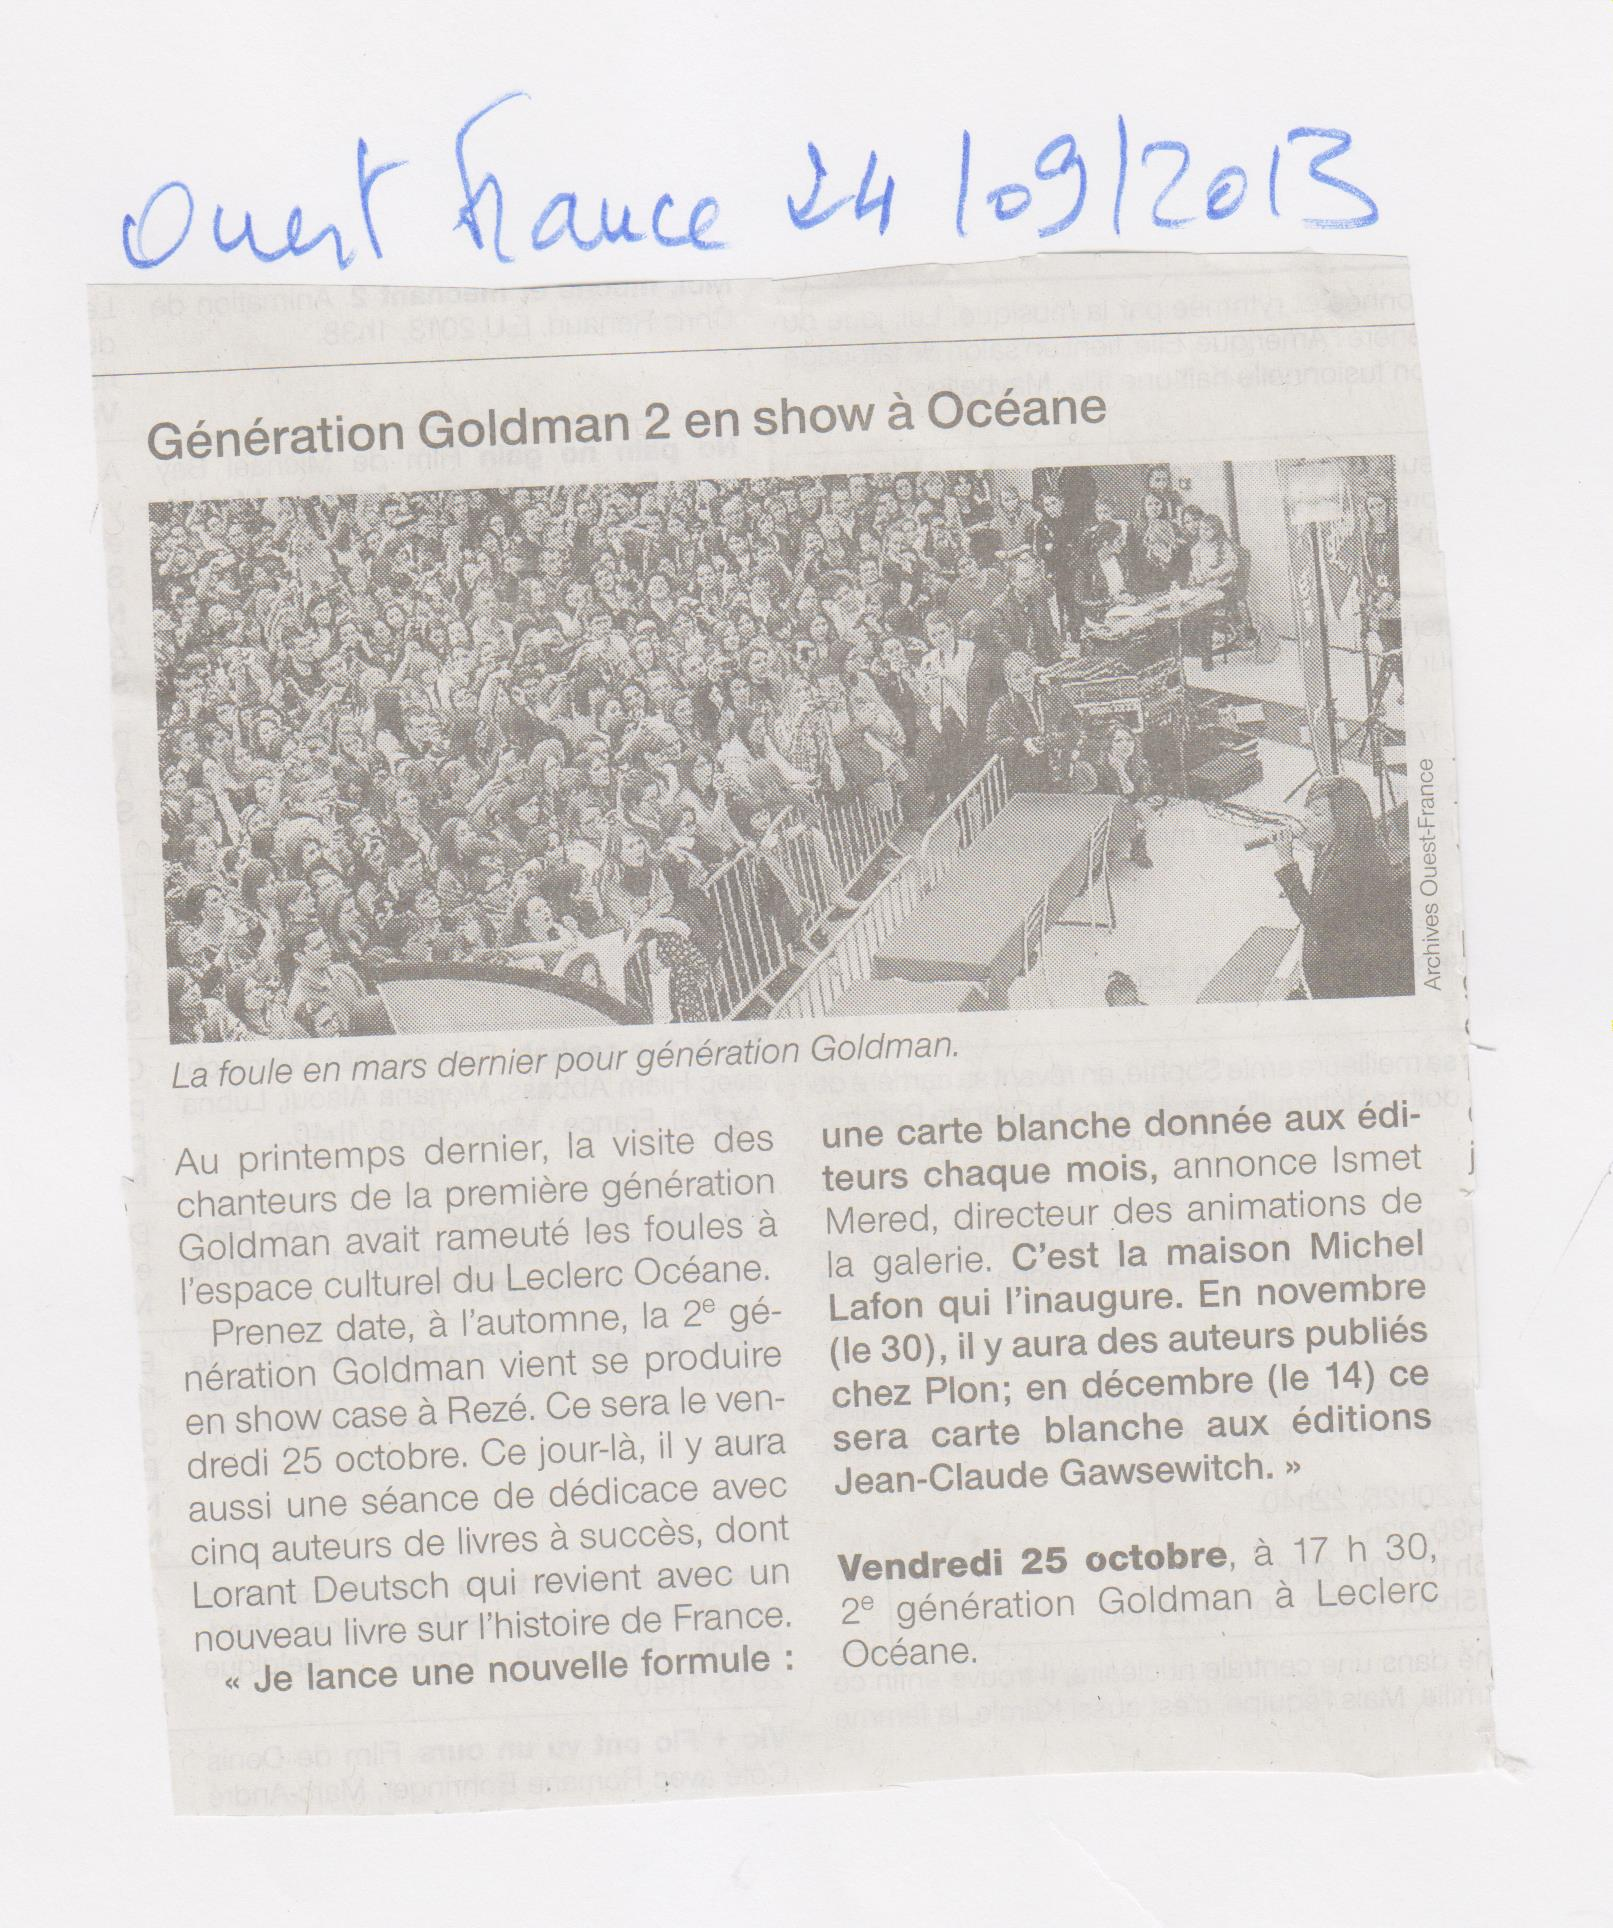 24.09.2013 - OUEST FRANCE - GENERATION GOLDMAN 2